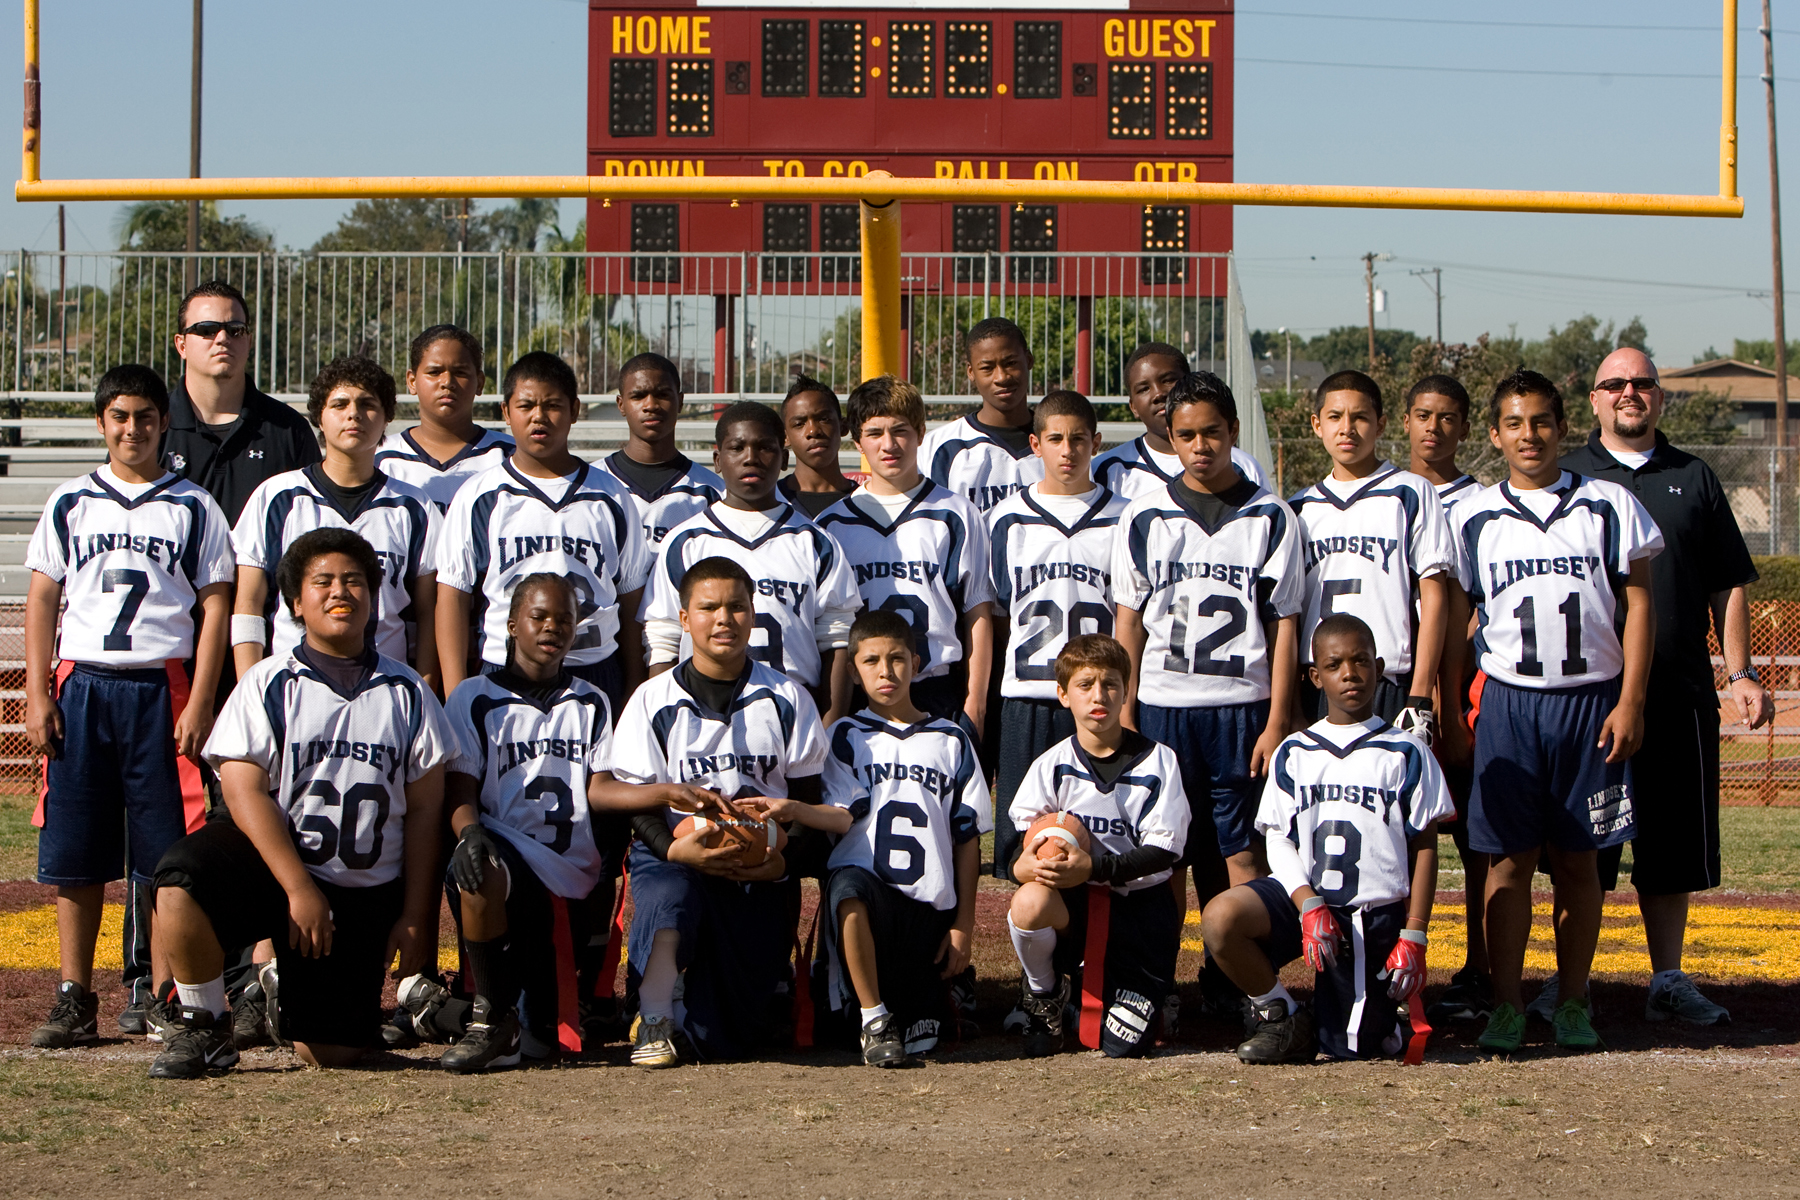 2009-2010 Western League champs, All City runner up